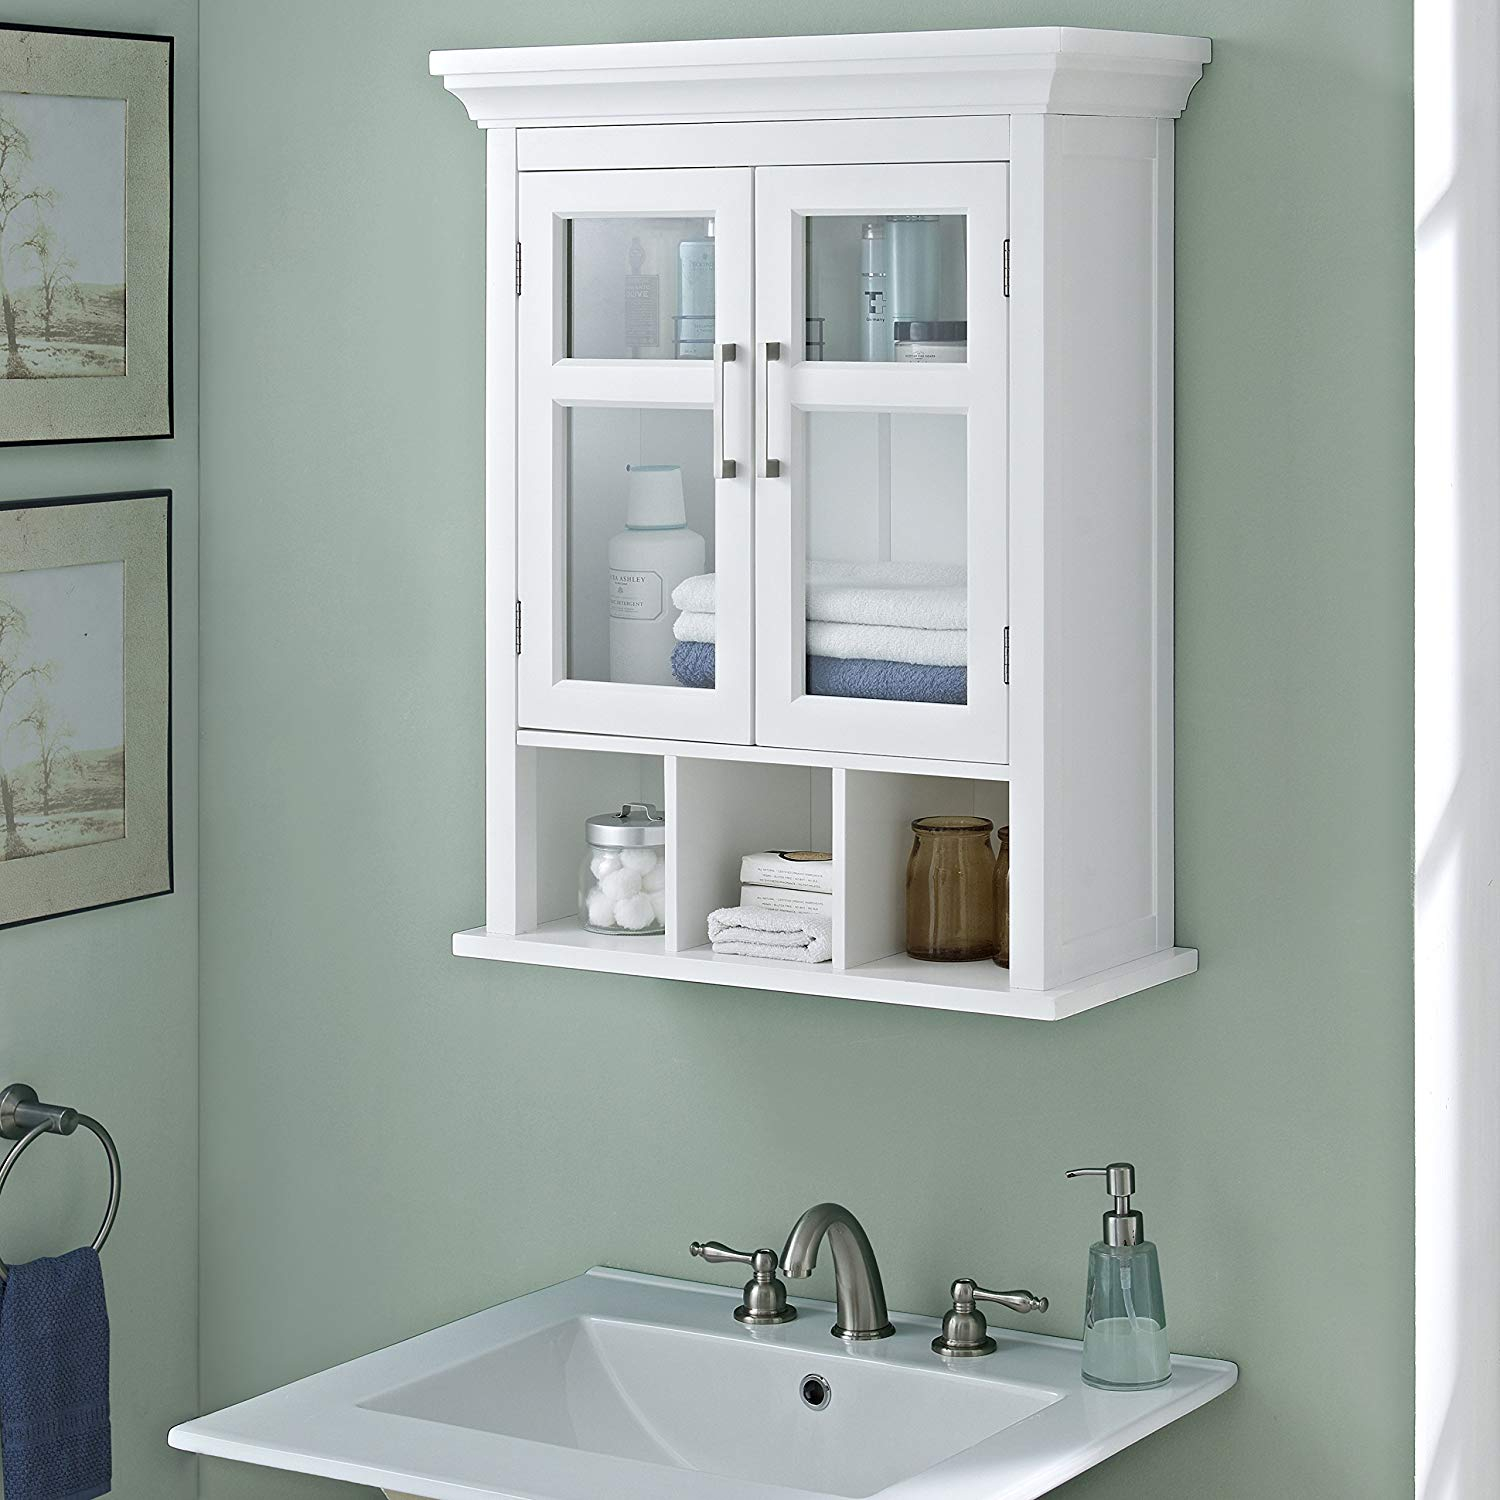 Modern Cabinet Ideas : Walmart Bathroom Storage Over Toilet Bathroom Wall intended for Bathroom Wall Storage Ideas